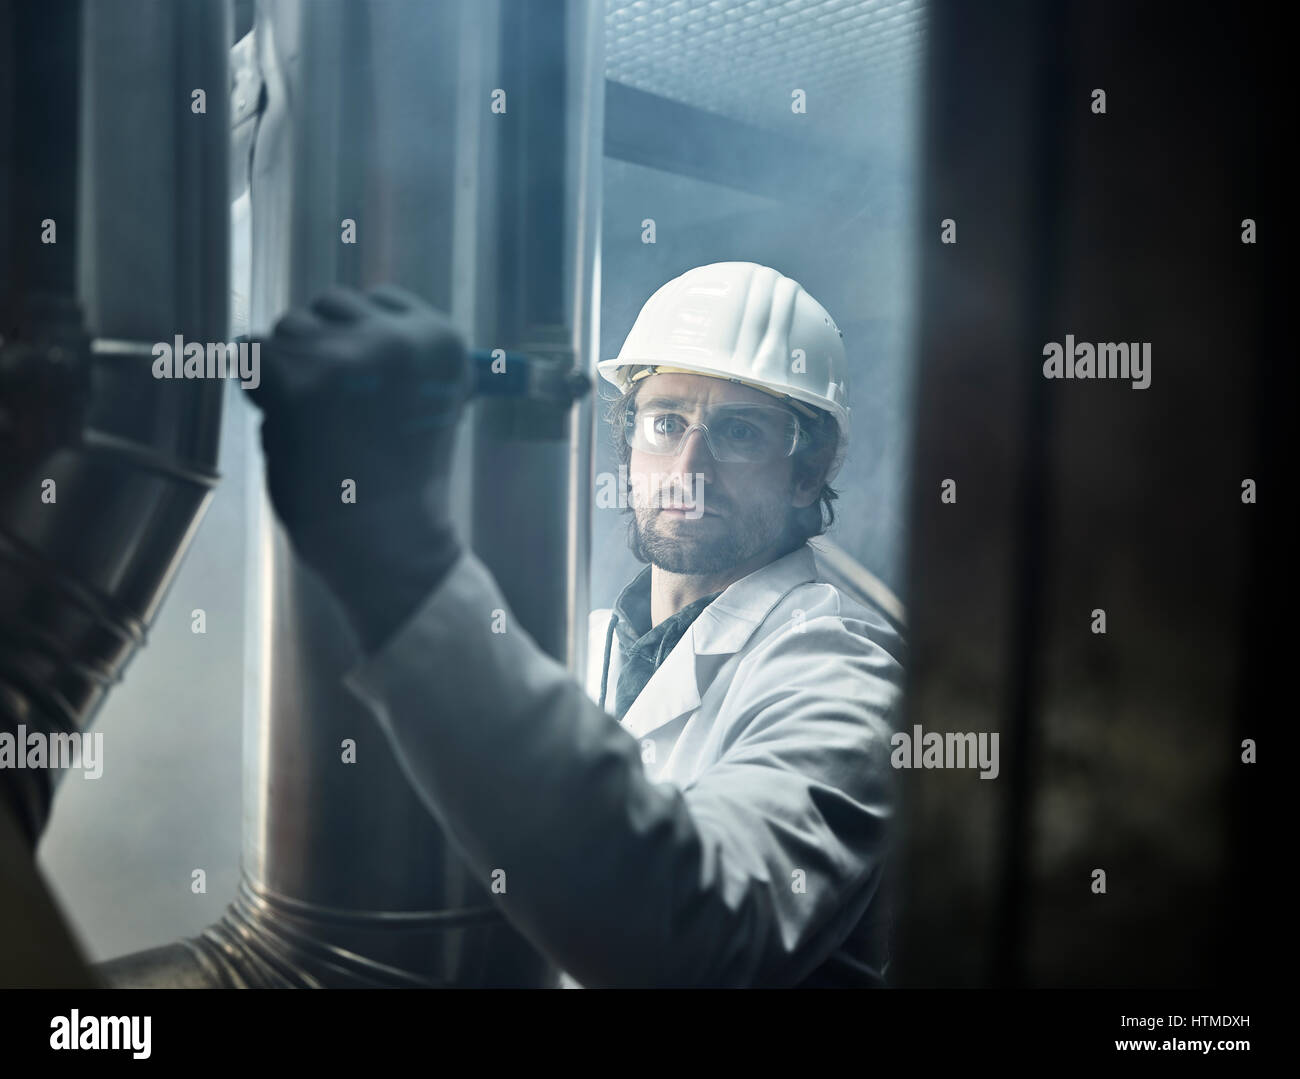 Mechanic with white helmet and lab coat moving a lever of a refrigerant line, Austria - Stock Image